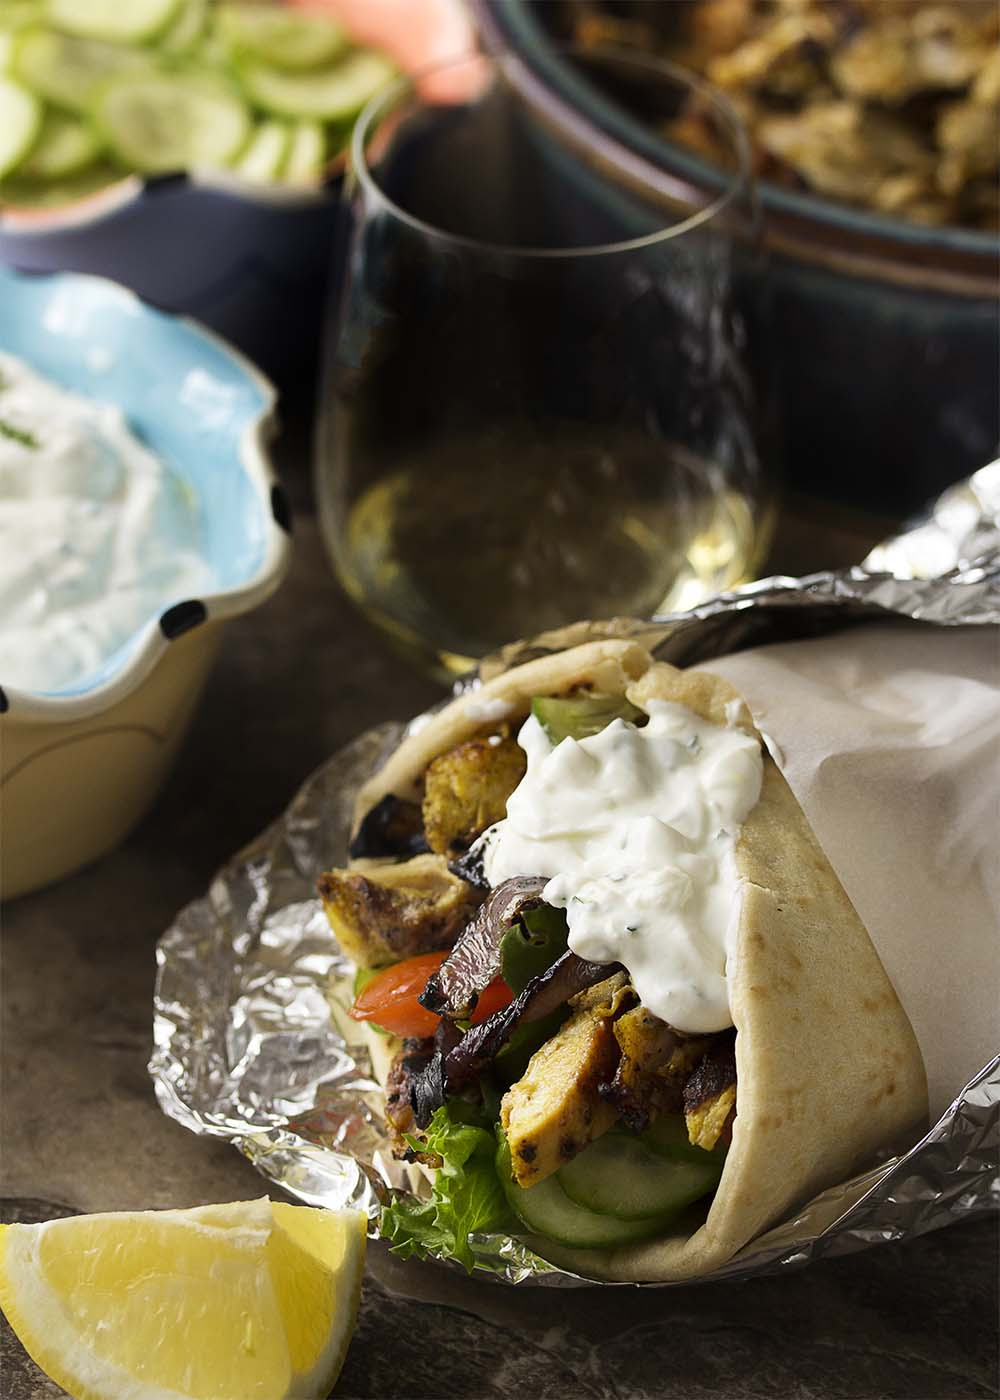 Chicken shawarma pita wrap filled with chicken, veggies, and yogurt sauce and wrapped in foil.